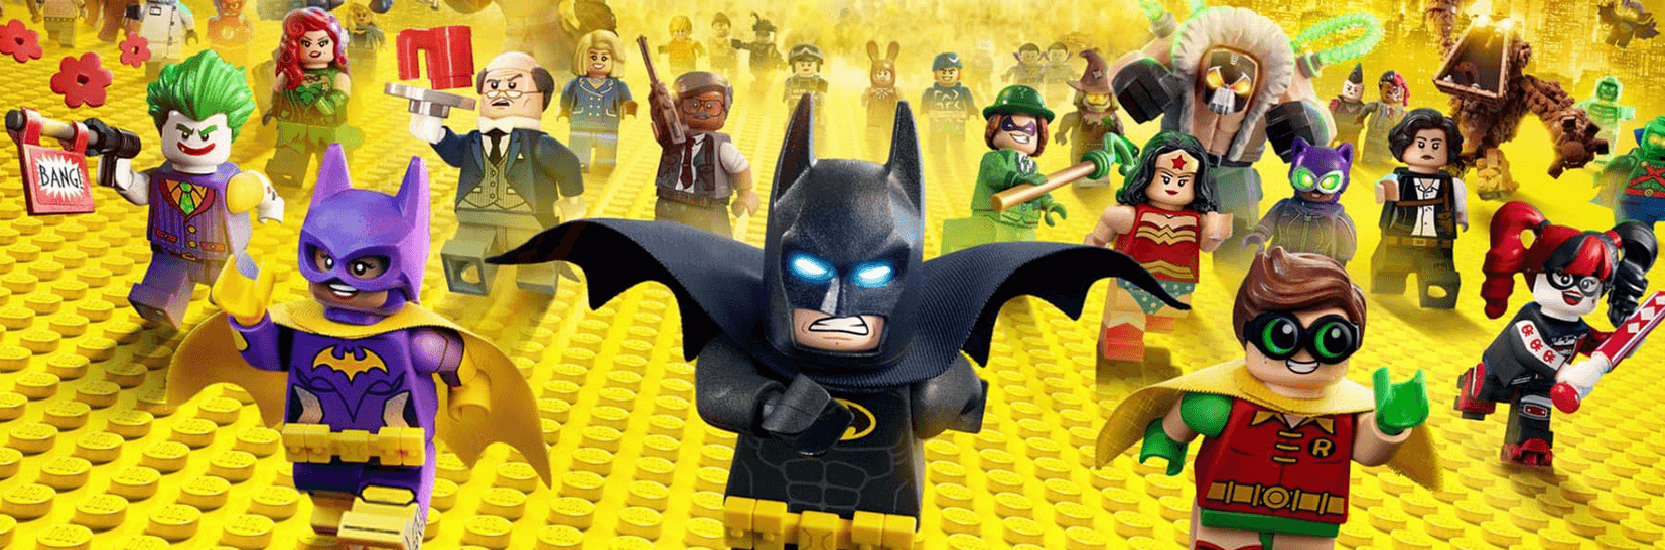 Critique – Lego Batman, le film